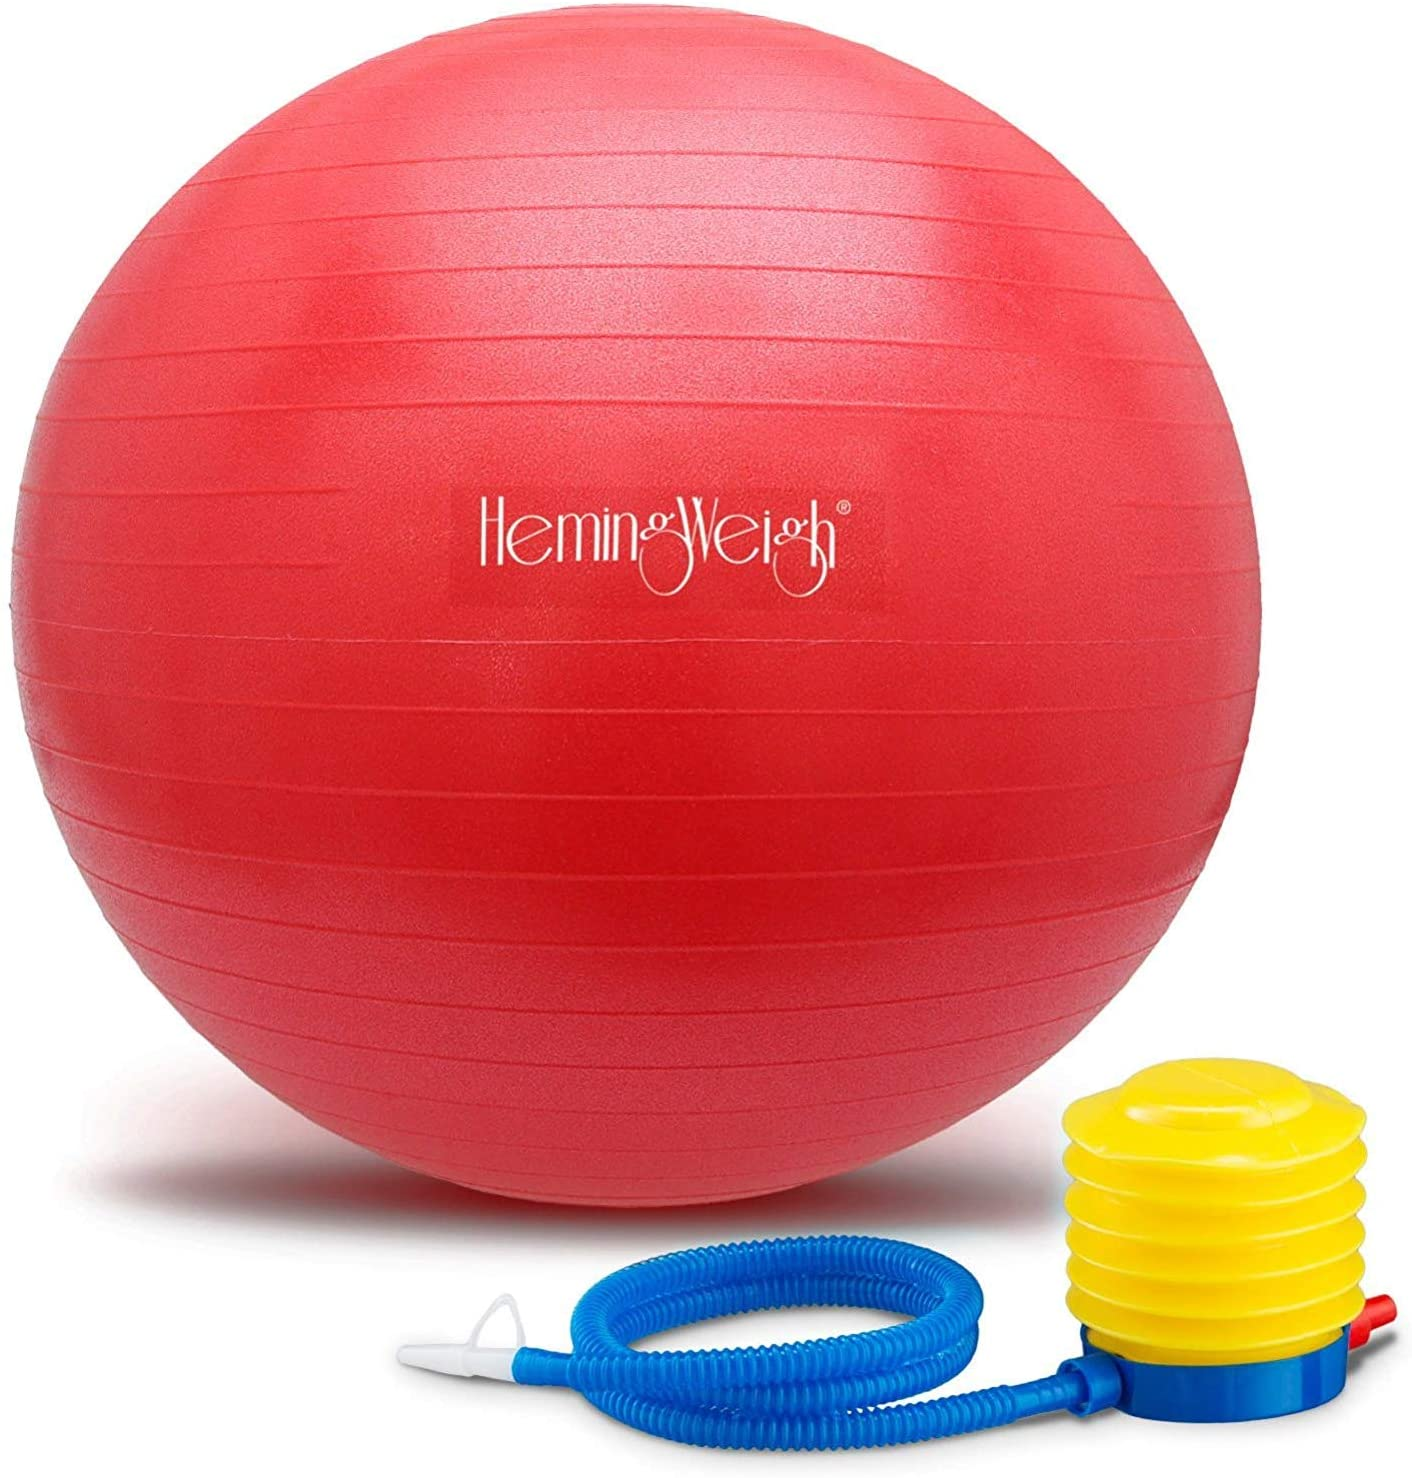 Image of HemingWeigh Anti-Burst Fitness and Stability 45 cm Ball, Red